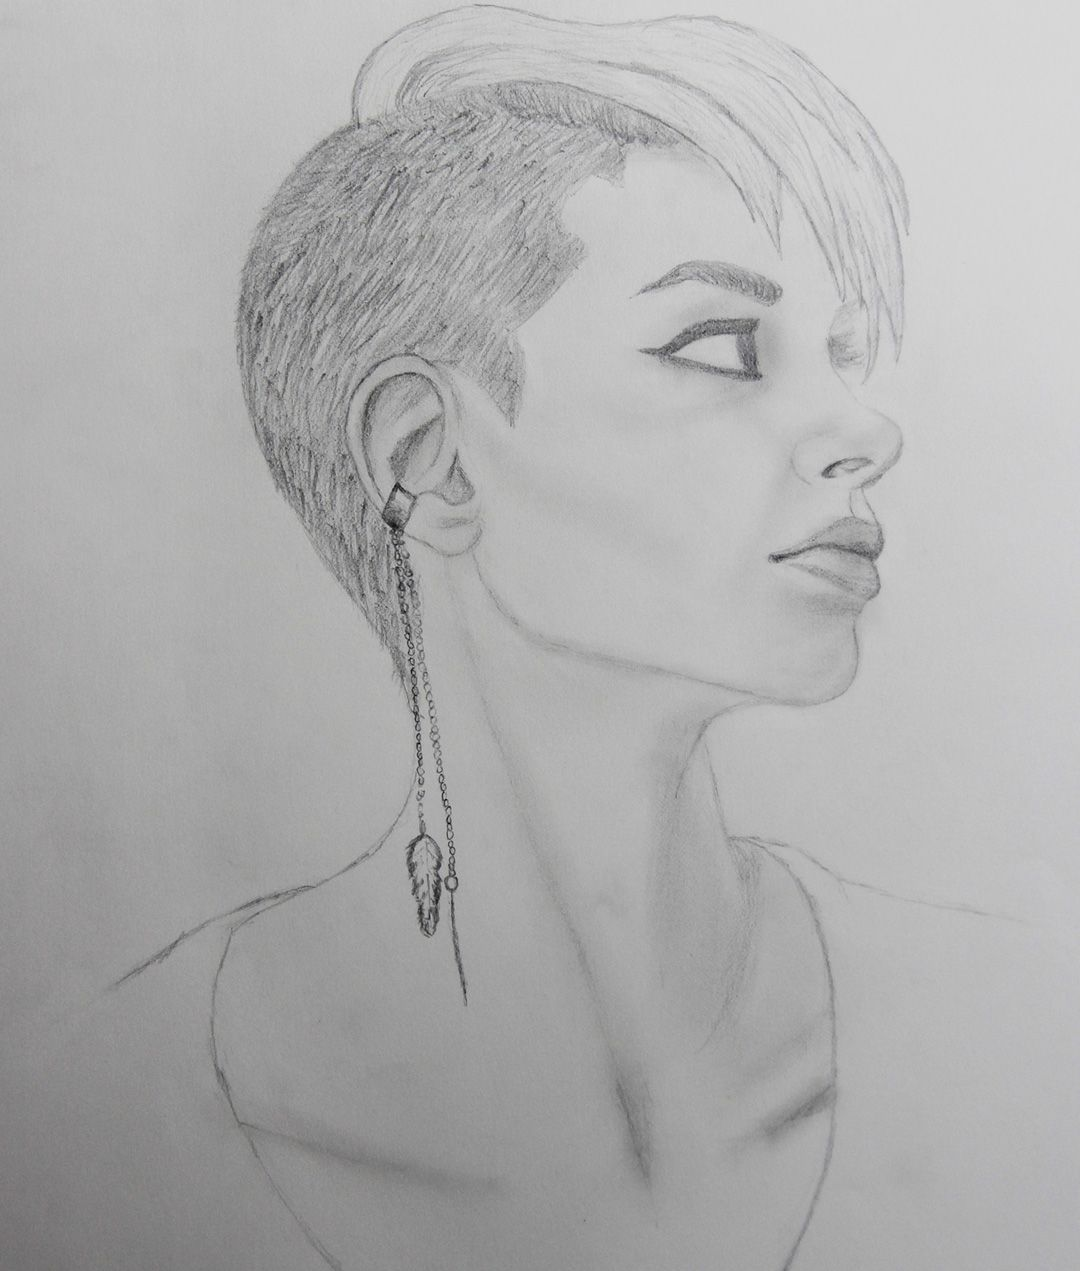 drawing of shaved head punk girl. undercut hairstyle